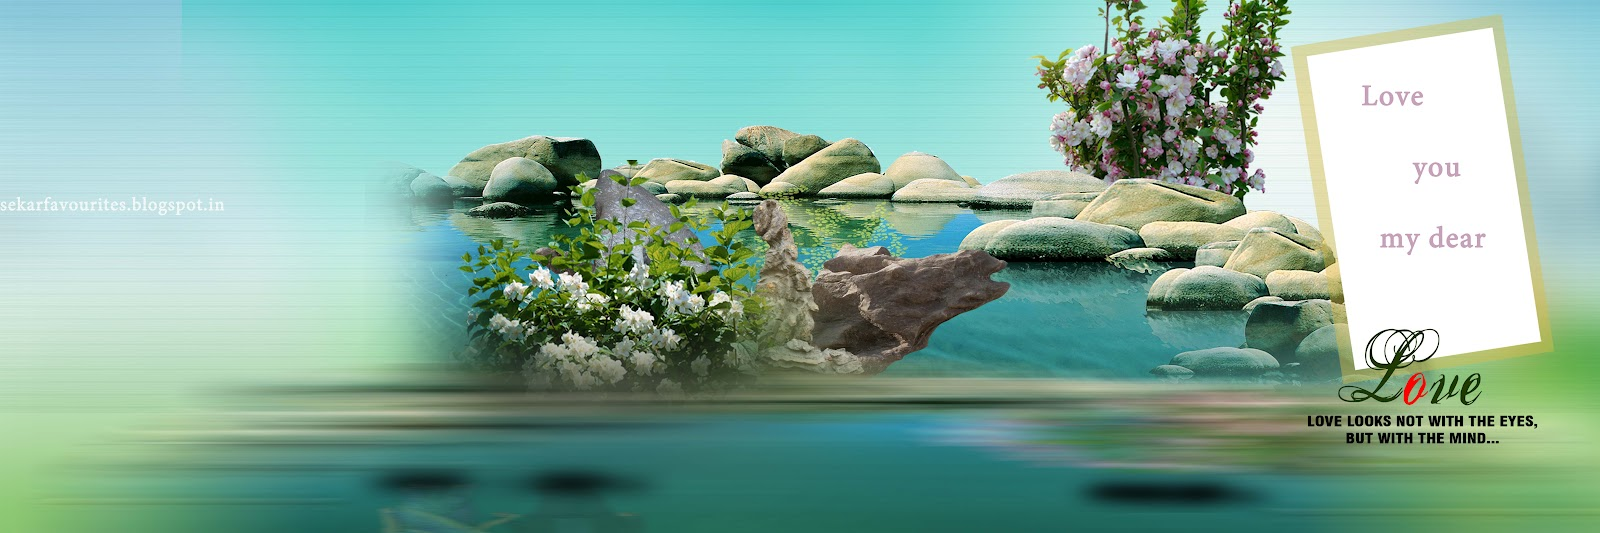 Photoshop Background Images Hd Psd Free Download The Galleries Of